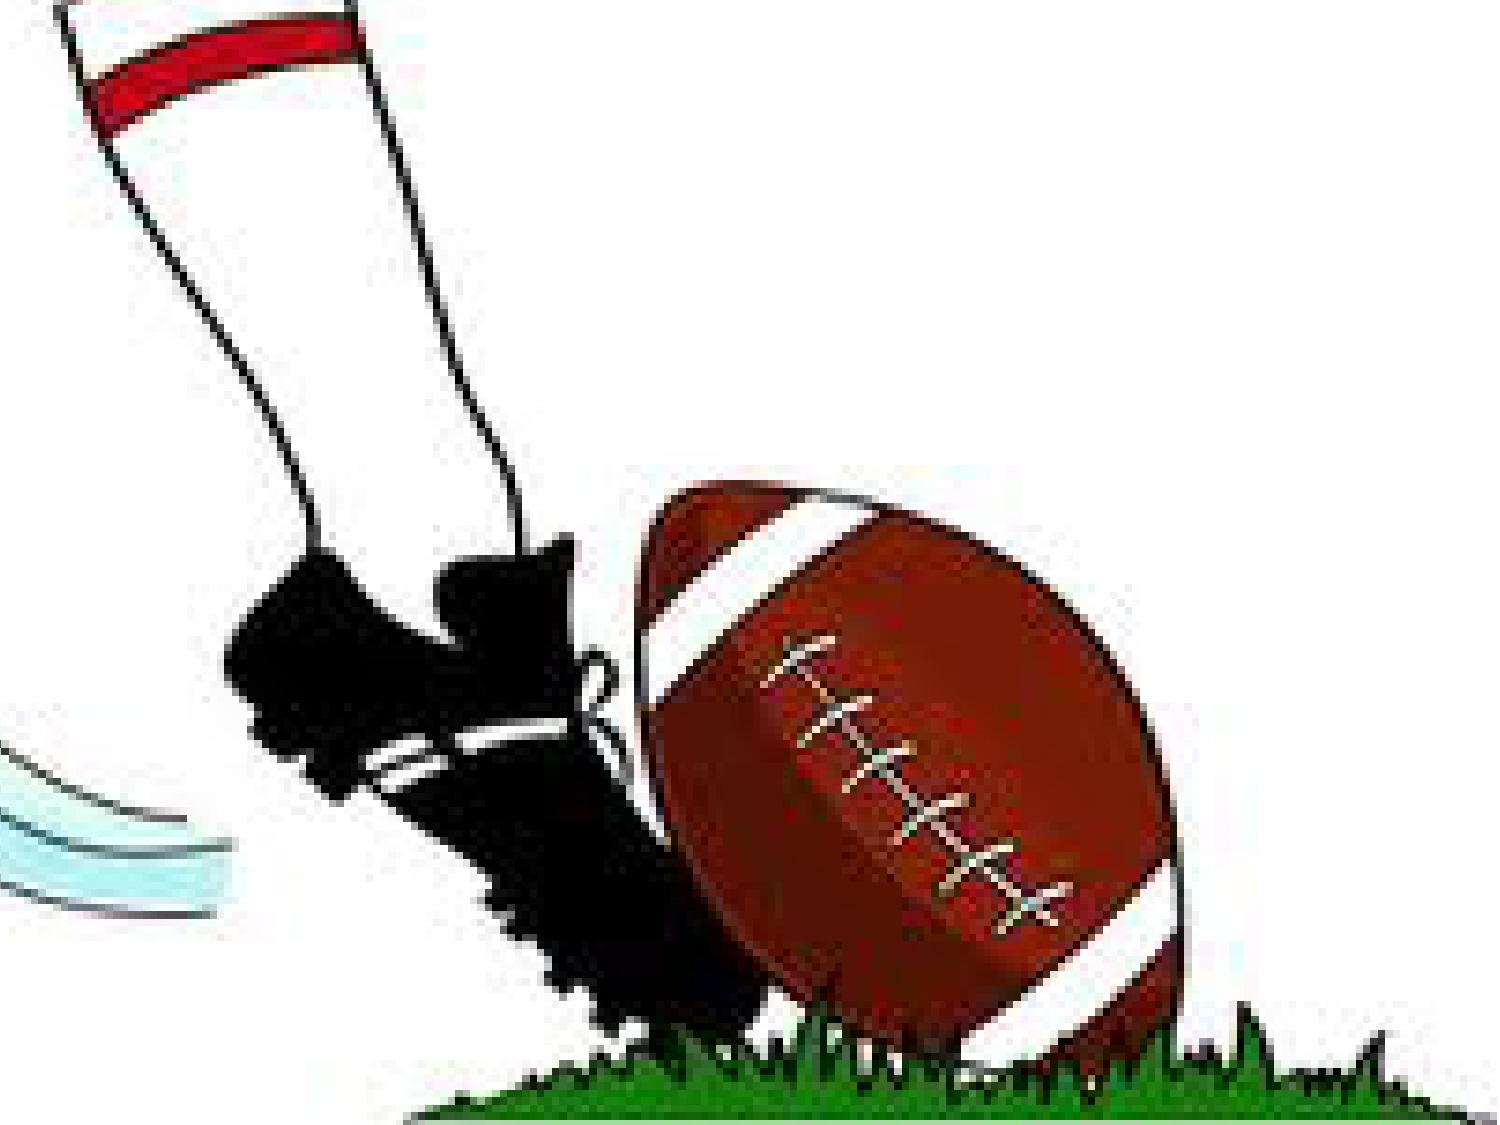 Football kick off clipart.